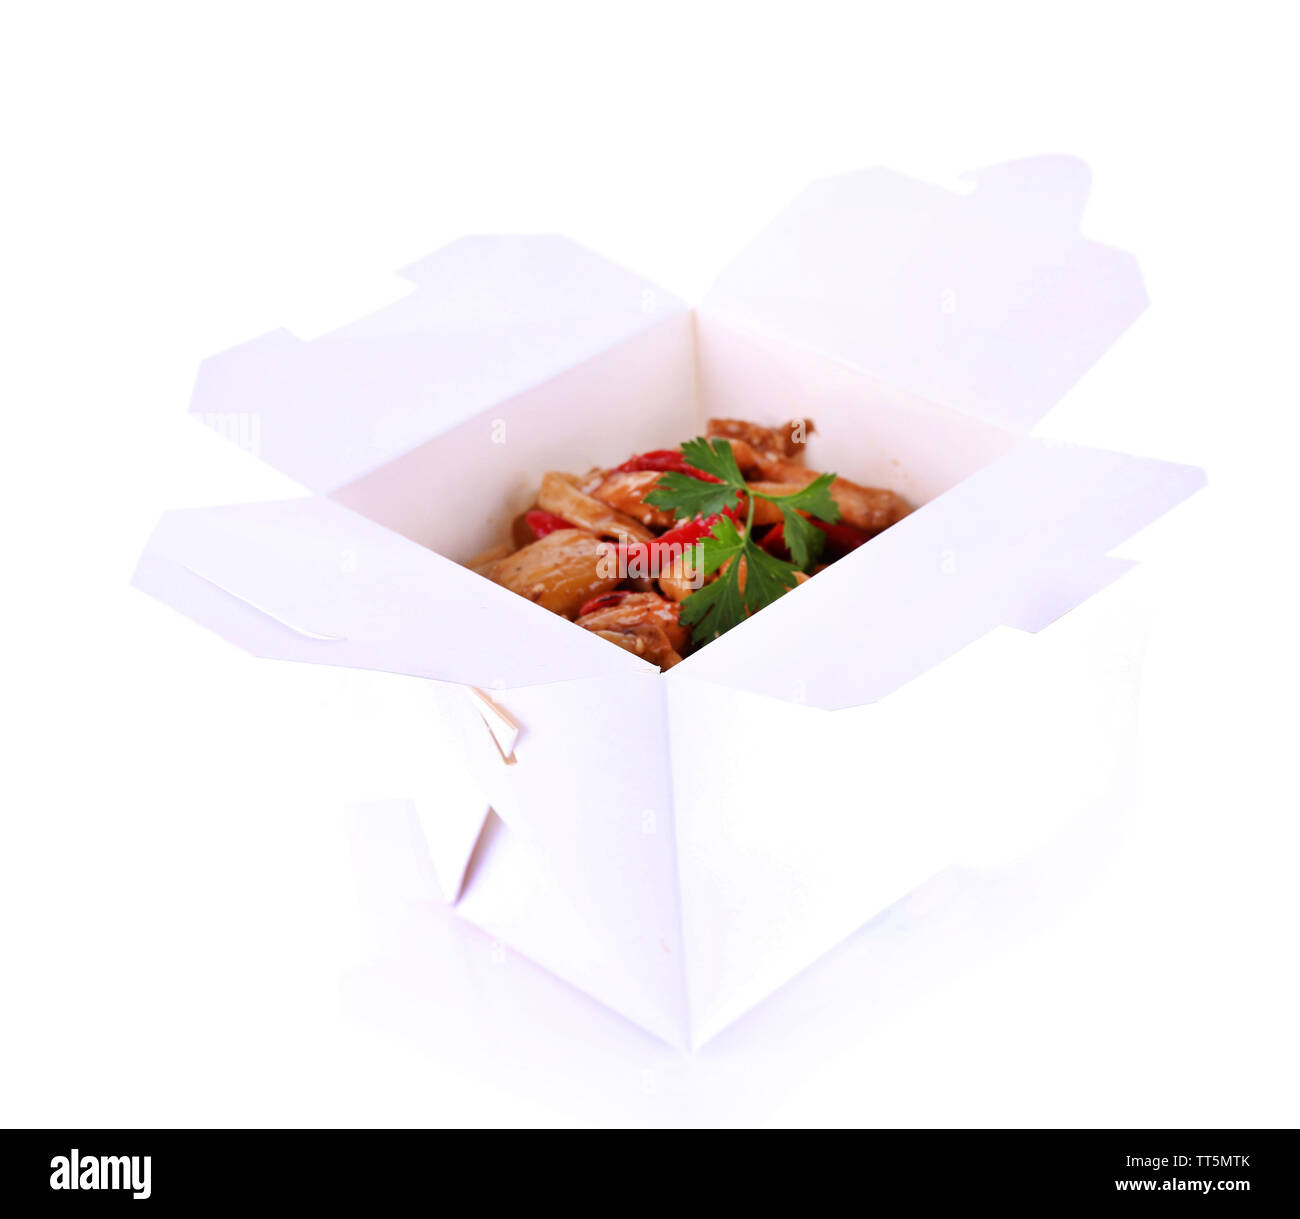 Fried noodle in takeaway box isolated on white - Stock Image